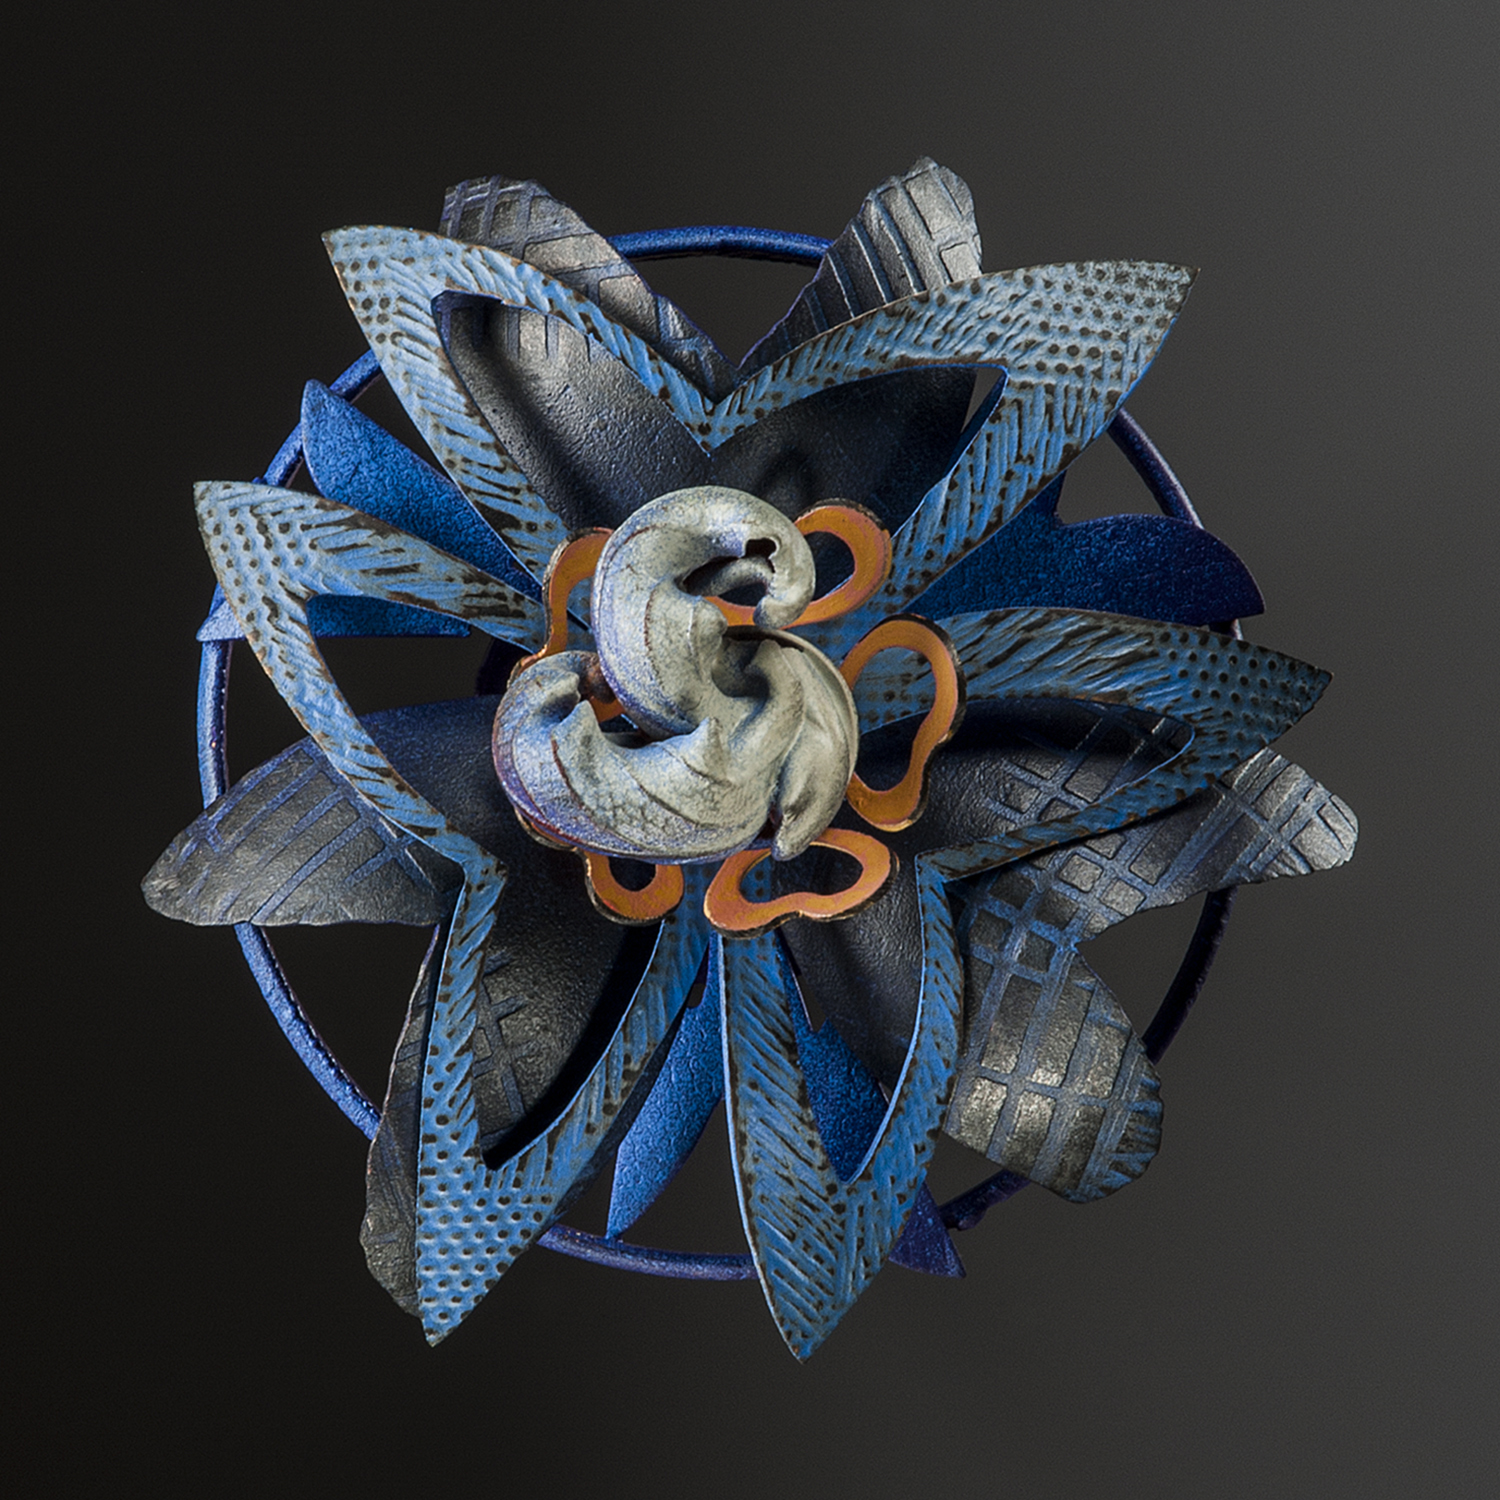 Rosette Brooch 4-14     2014     3.75 x 3.75 x 1.25 inches